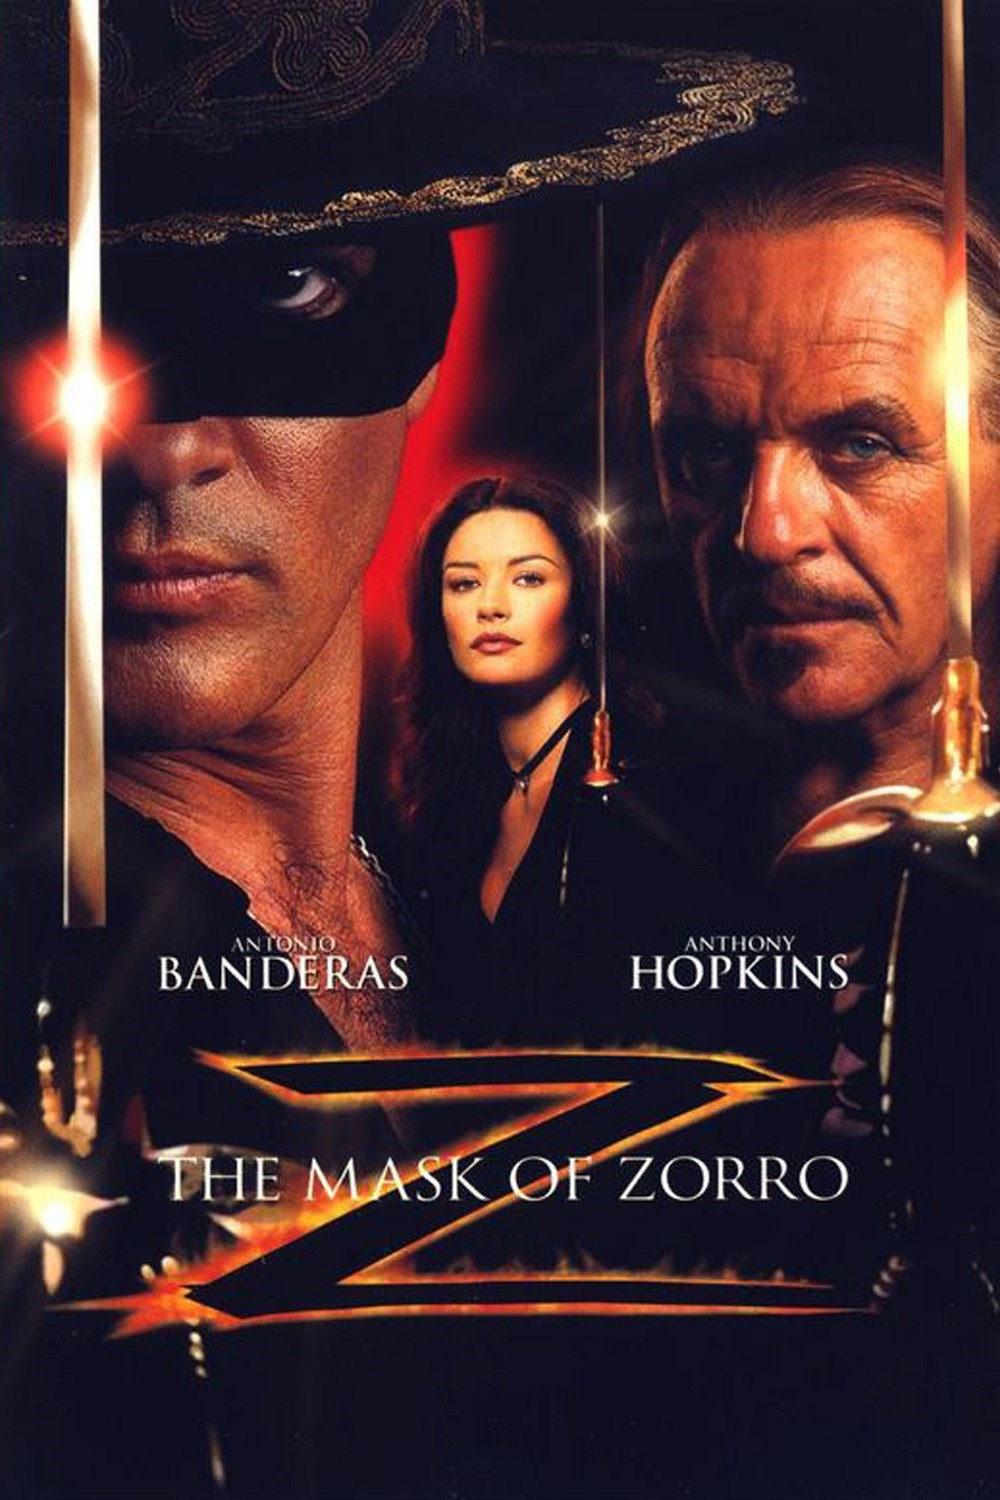 The Mask of Zorro.jpeg